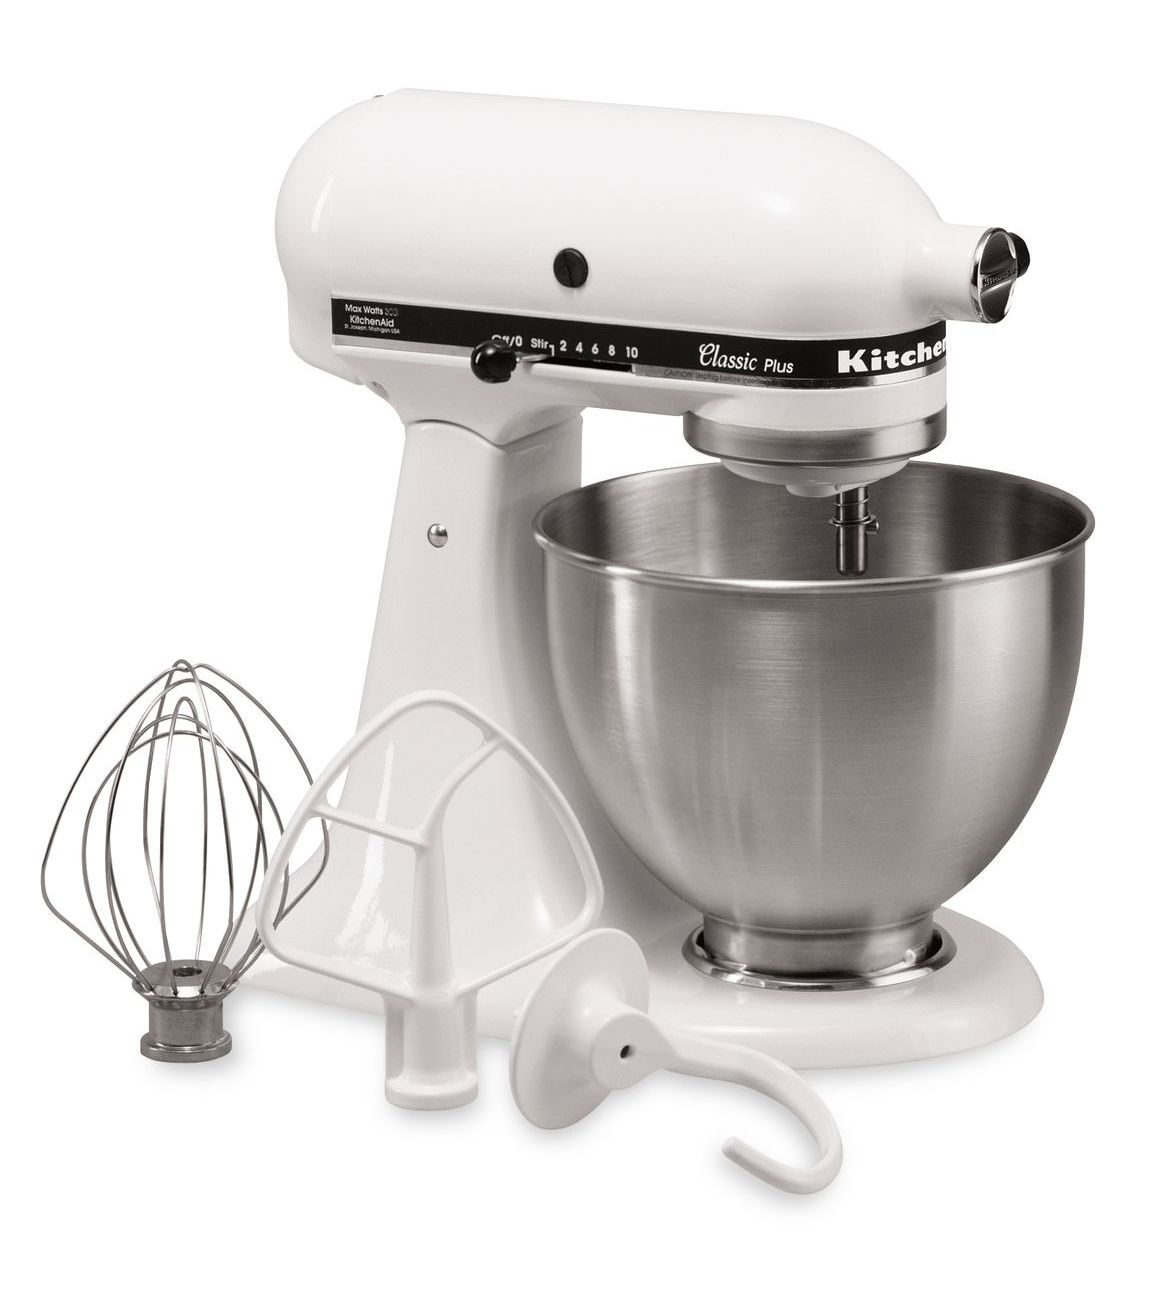 Kitchen aid mixer classic photo - 2